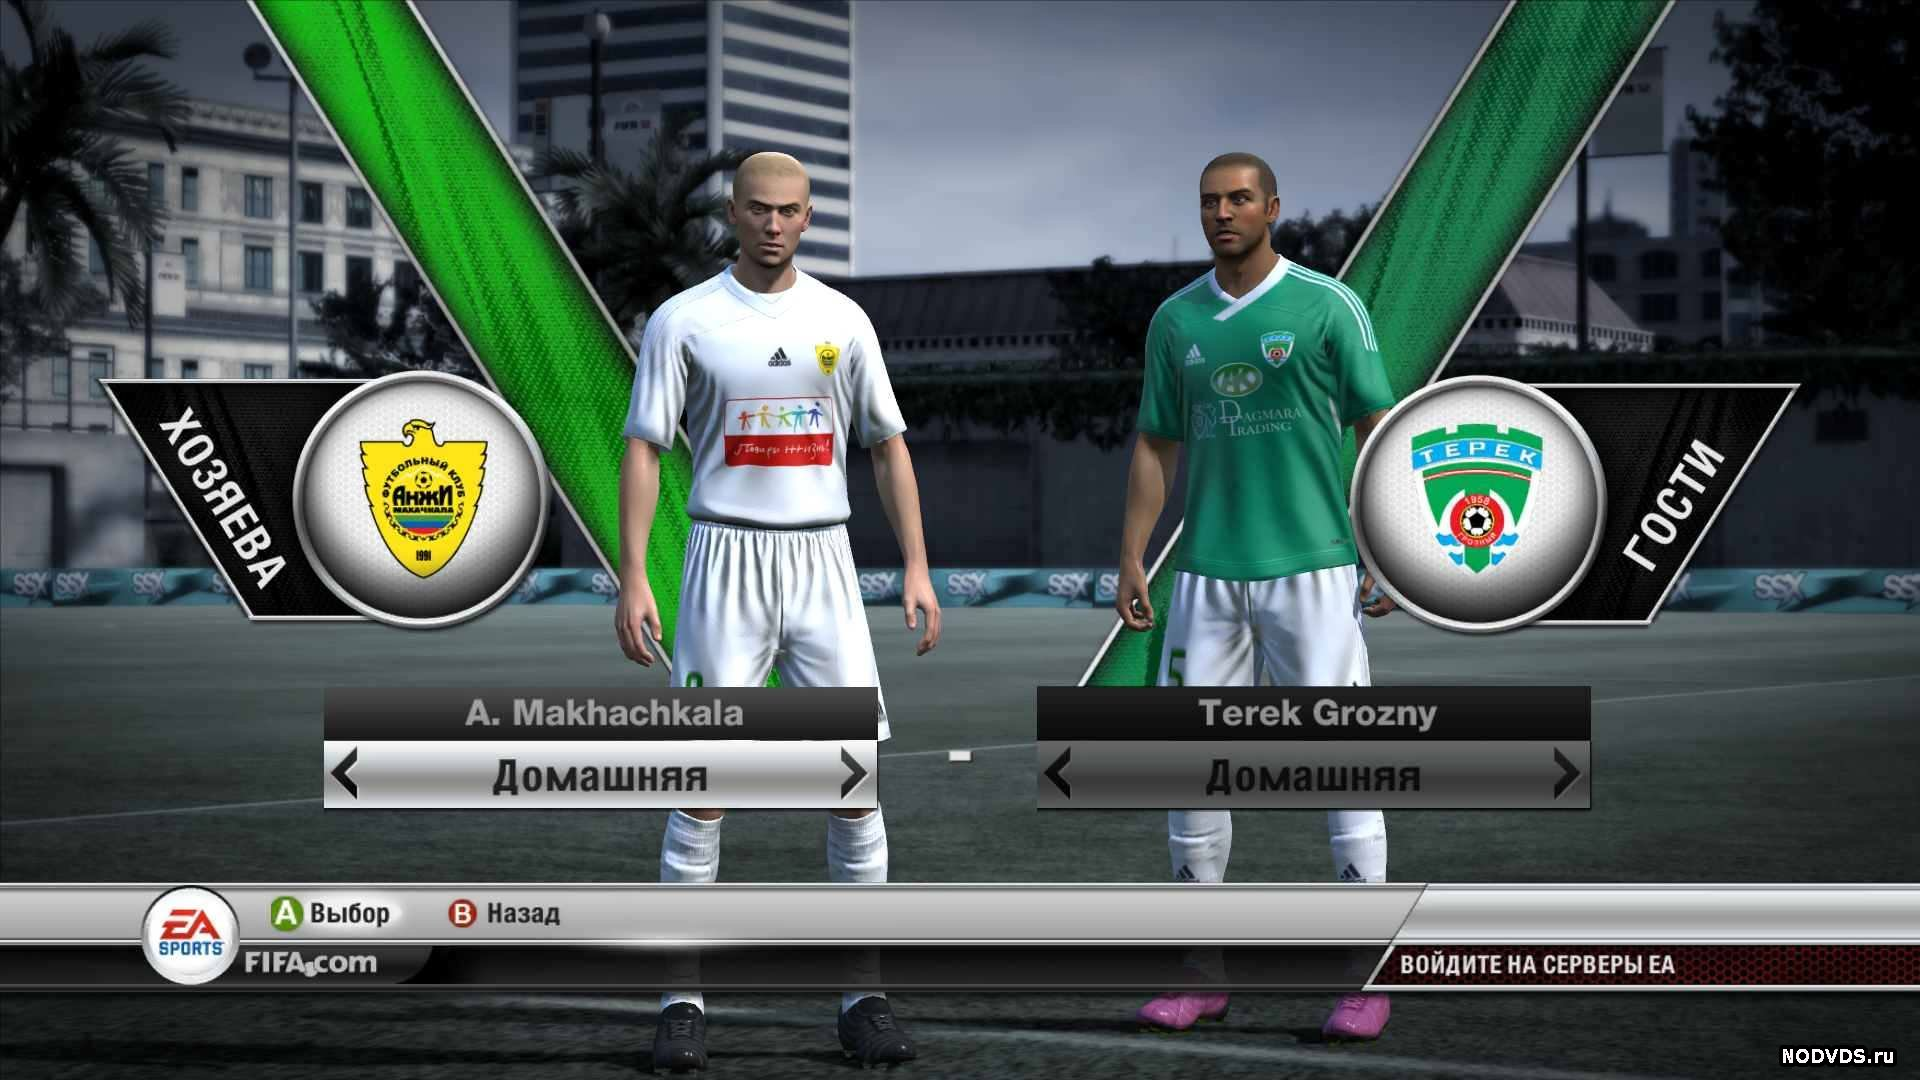 Русификатор Текста Fifa Android